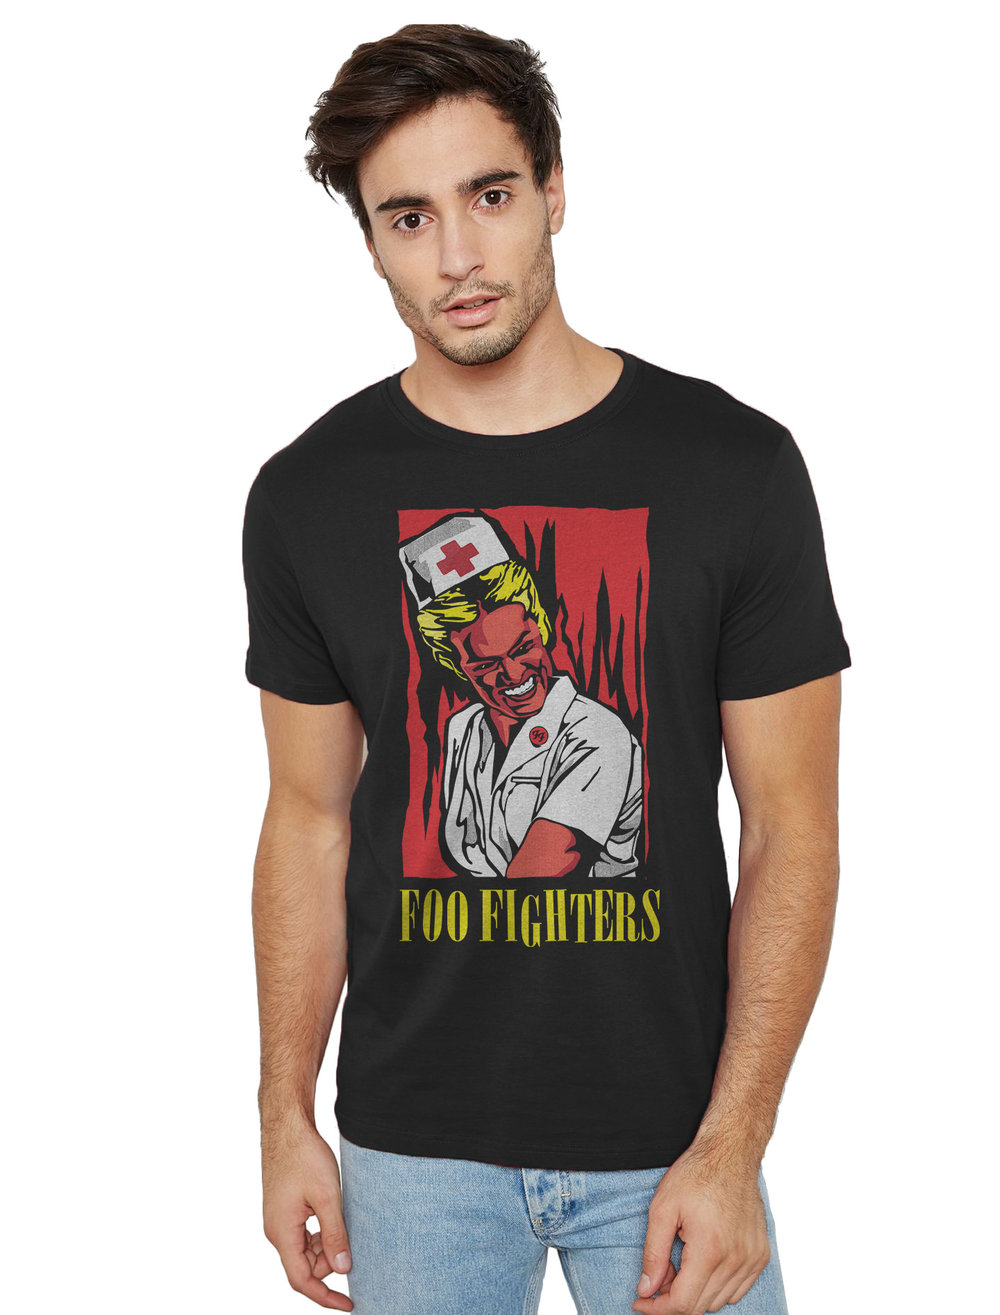 foo-fighters-nurse-model.jpg